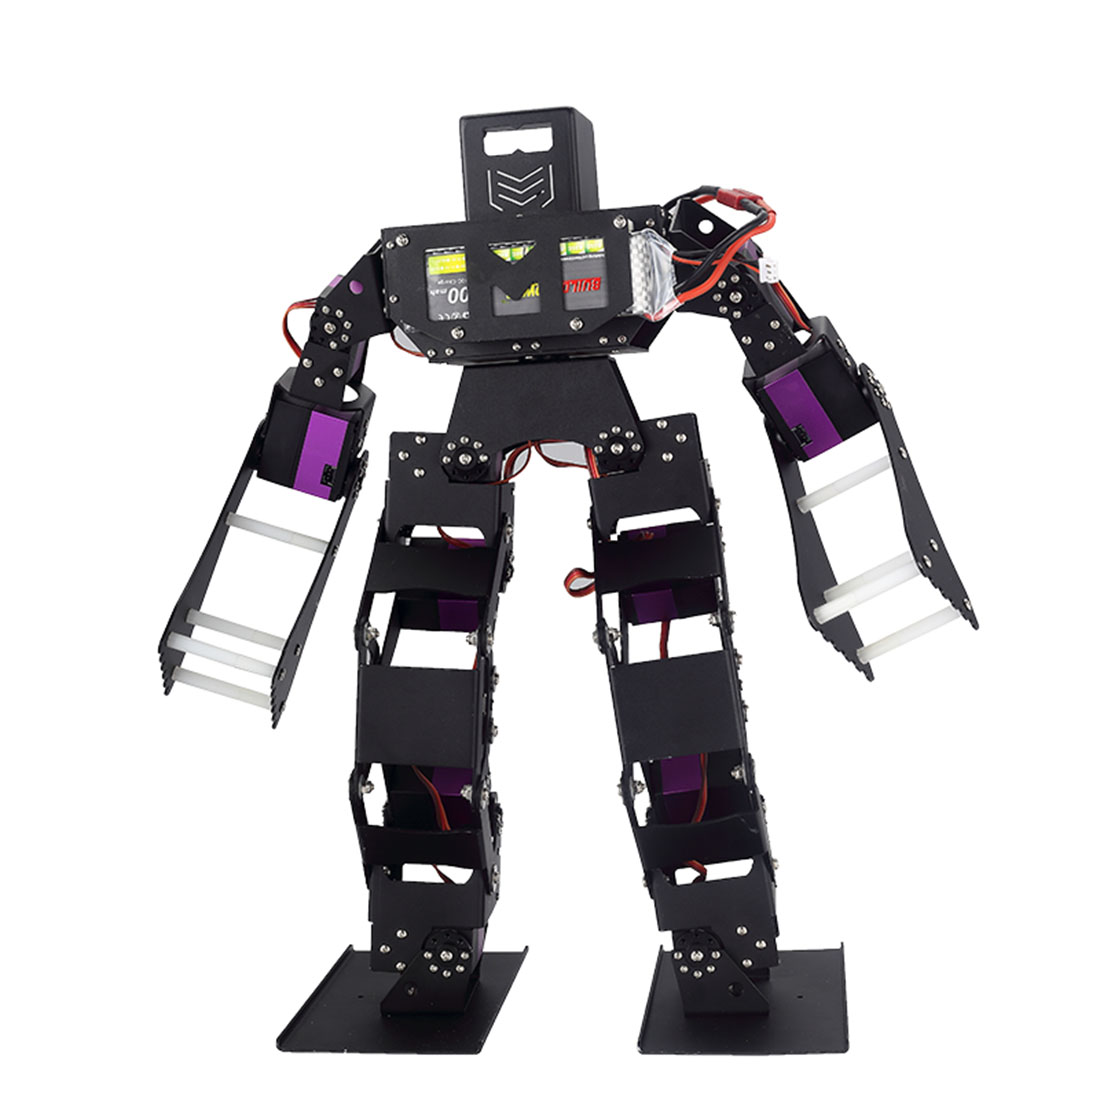 Programmable Biped Robot Boxing Competition Robot Toy DIY Stem Robot Toys Accessories (Finished Product)